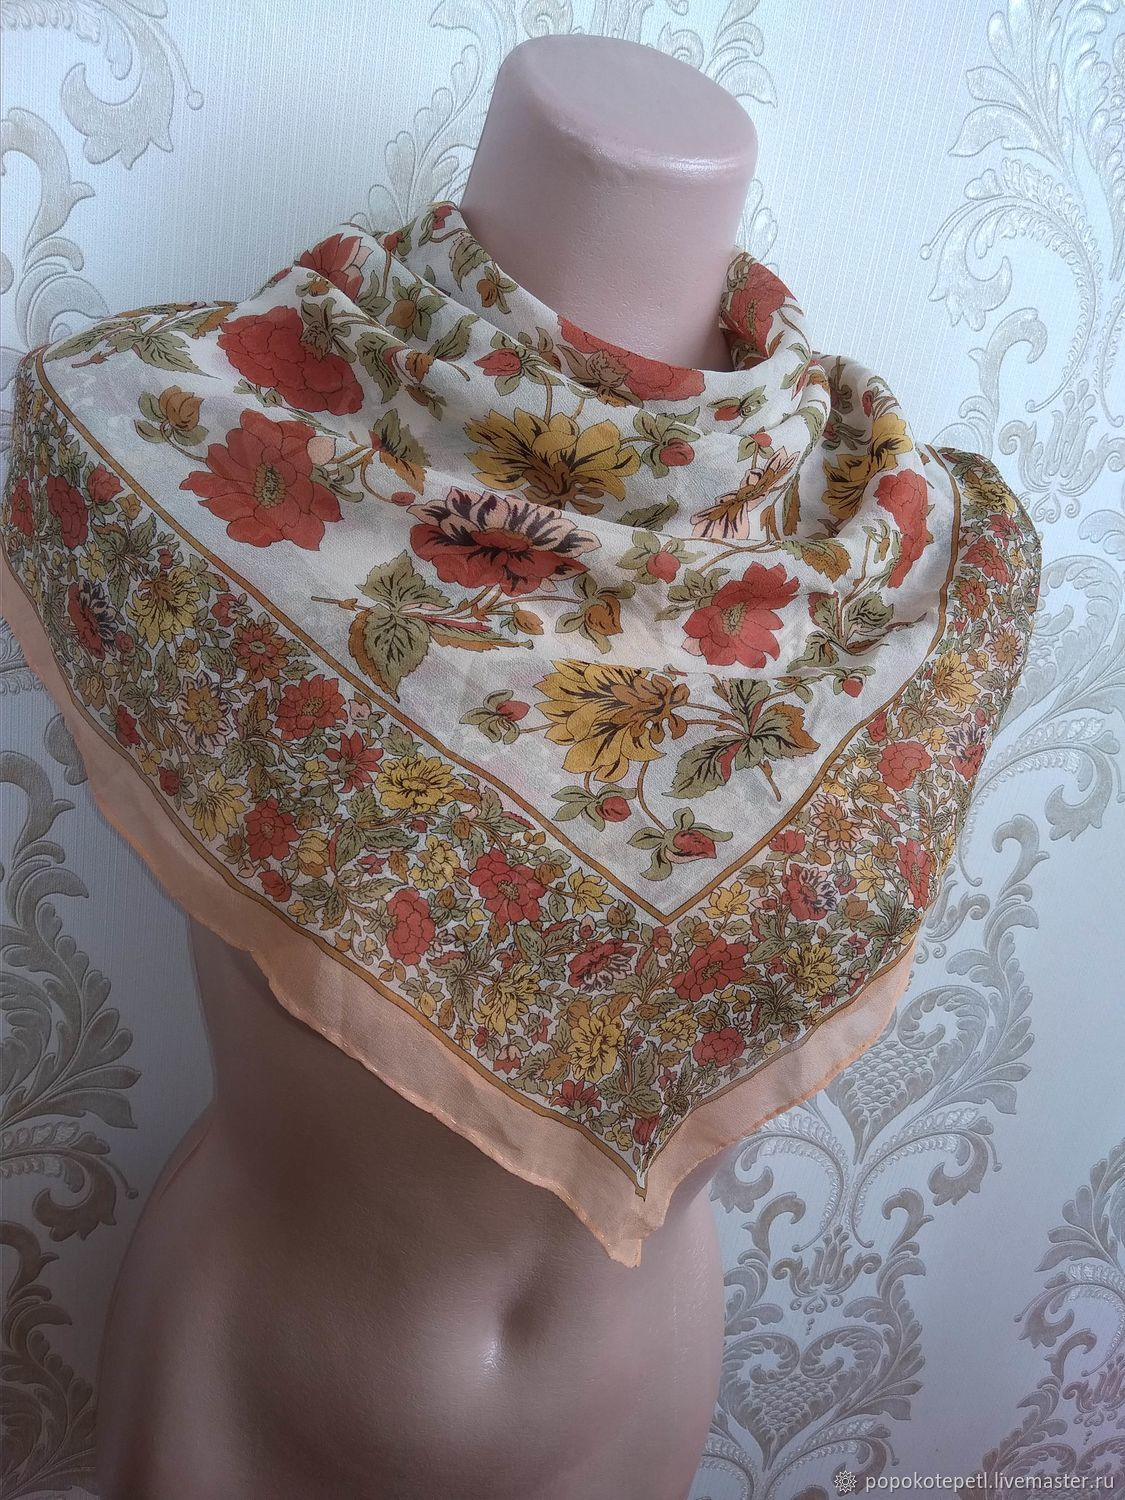 Vintage Clothing & Accessories. Livemaster - handmade. Buy Handkerchief 'Summer flowers',cream silk,vintage Germany.Flowers